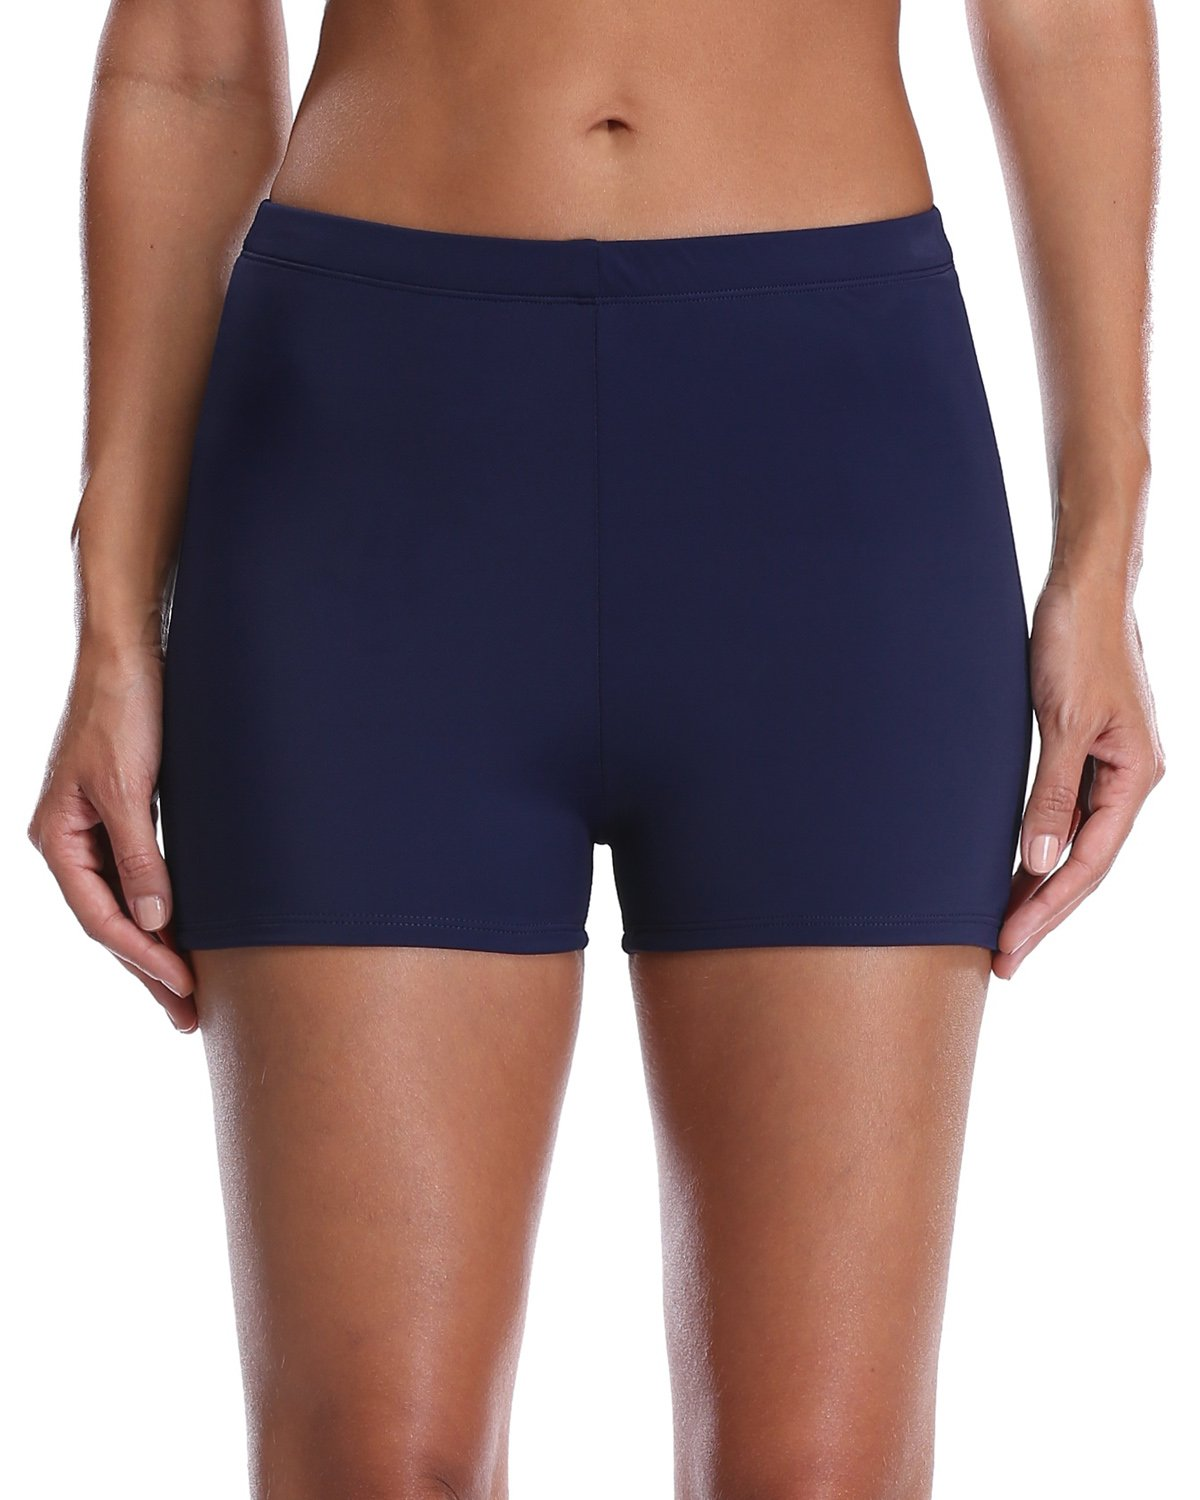 vivicoco Navy Tankini Trunks for Women High Waisted Swim Shorts Solid Bottoms 14